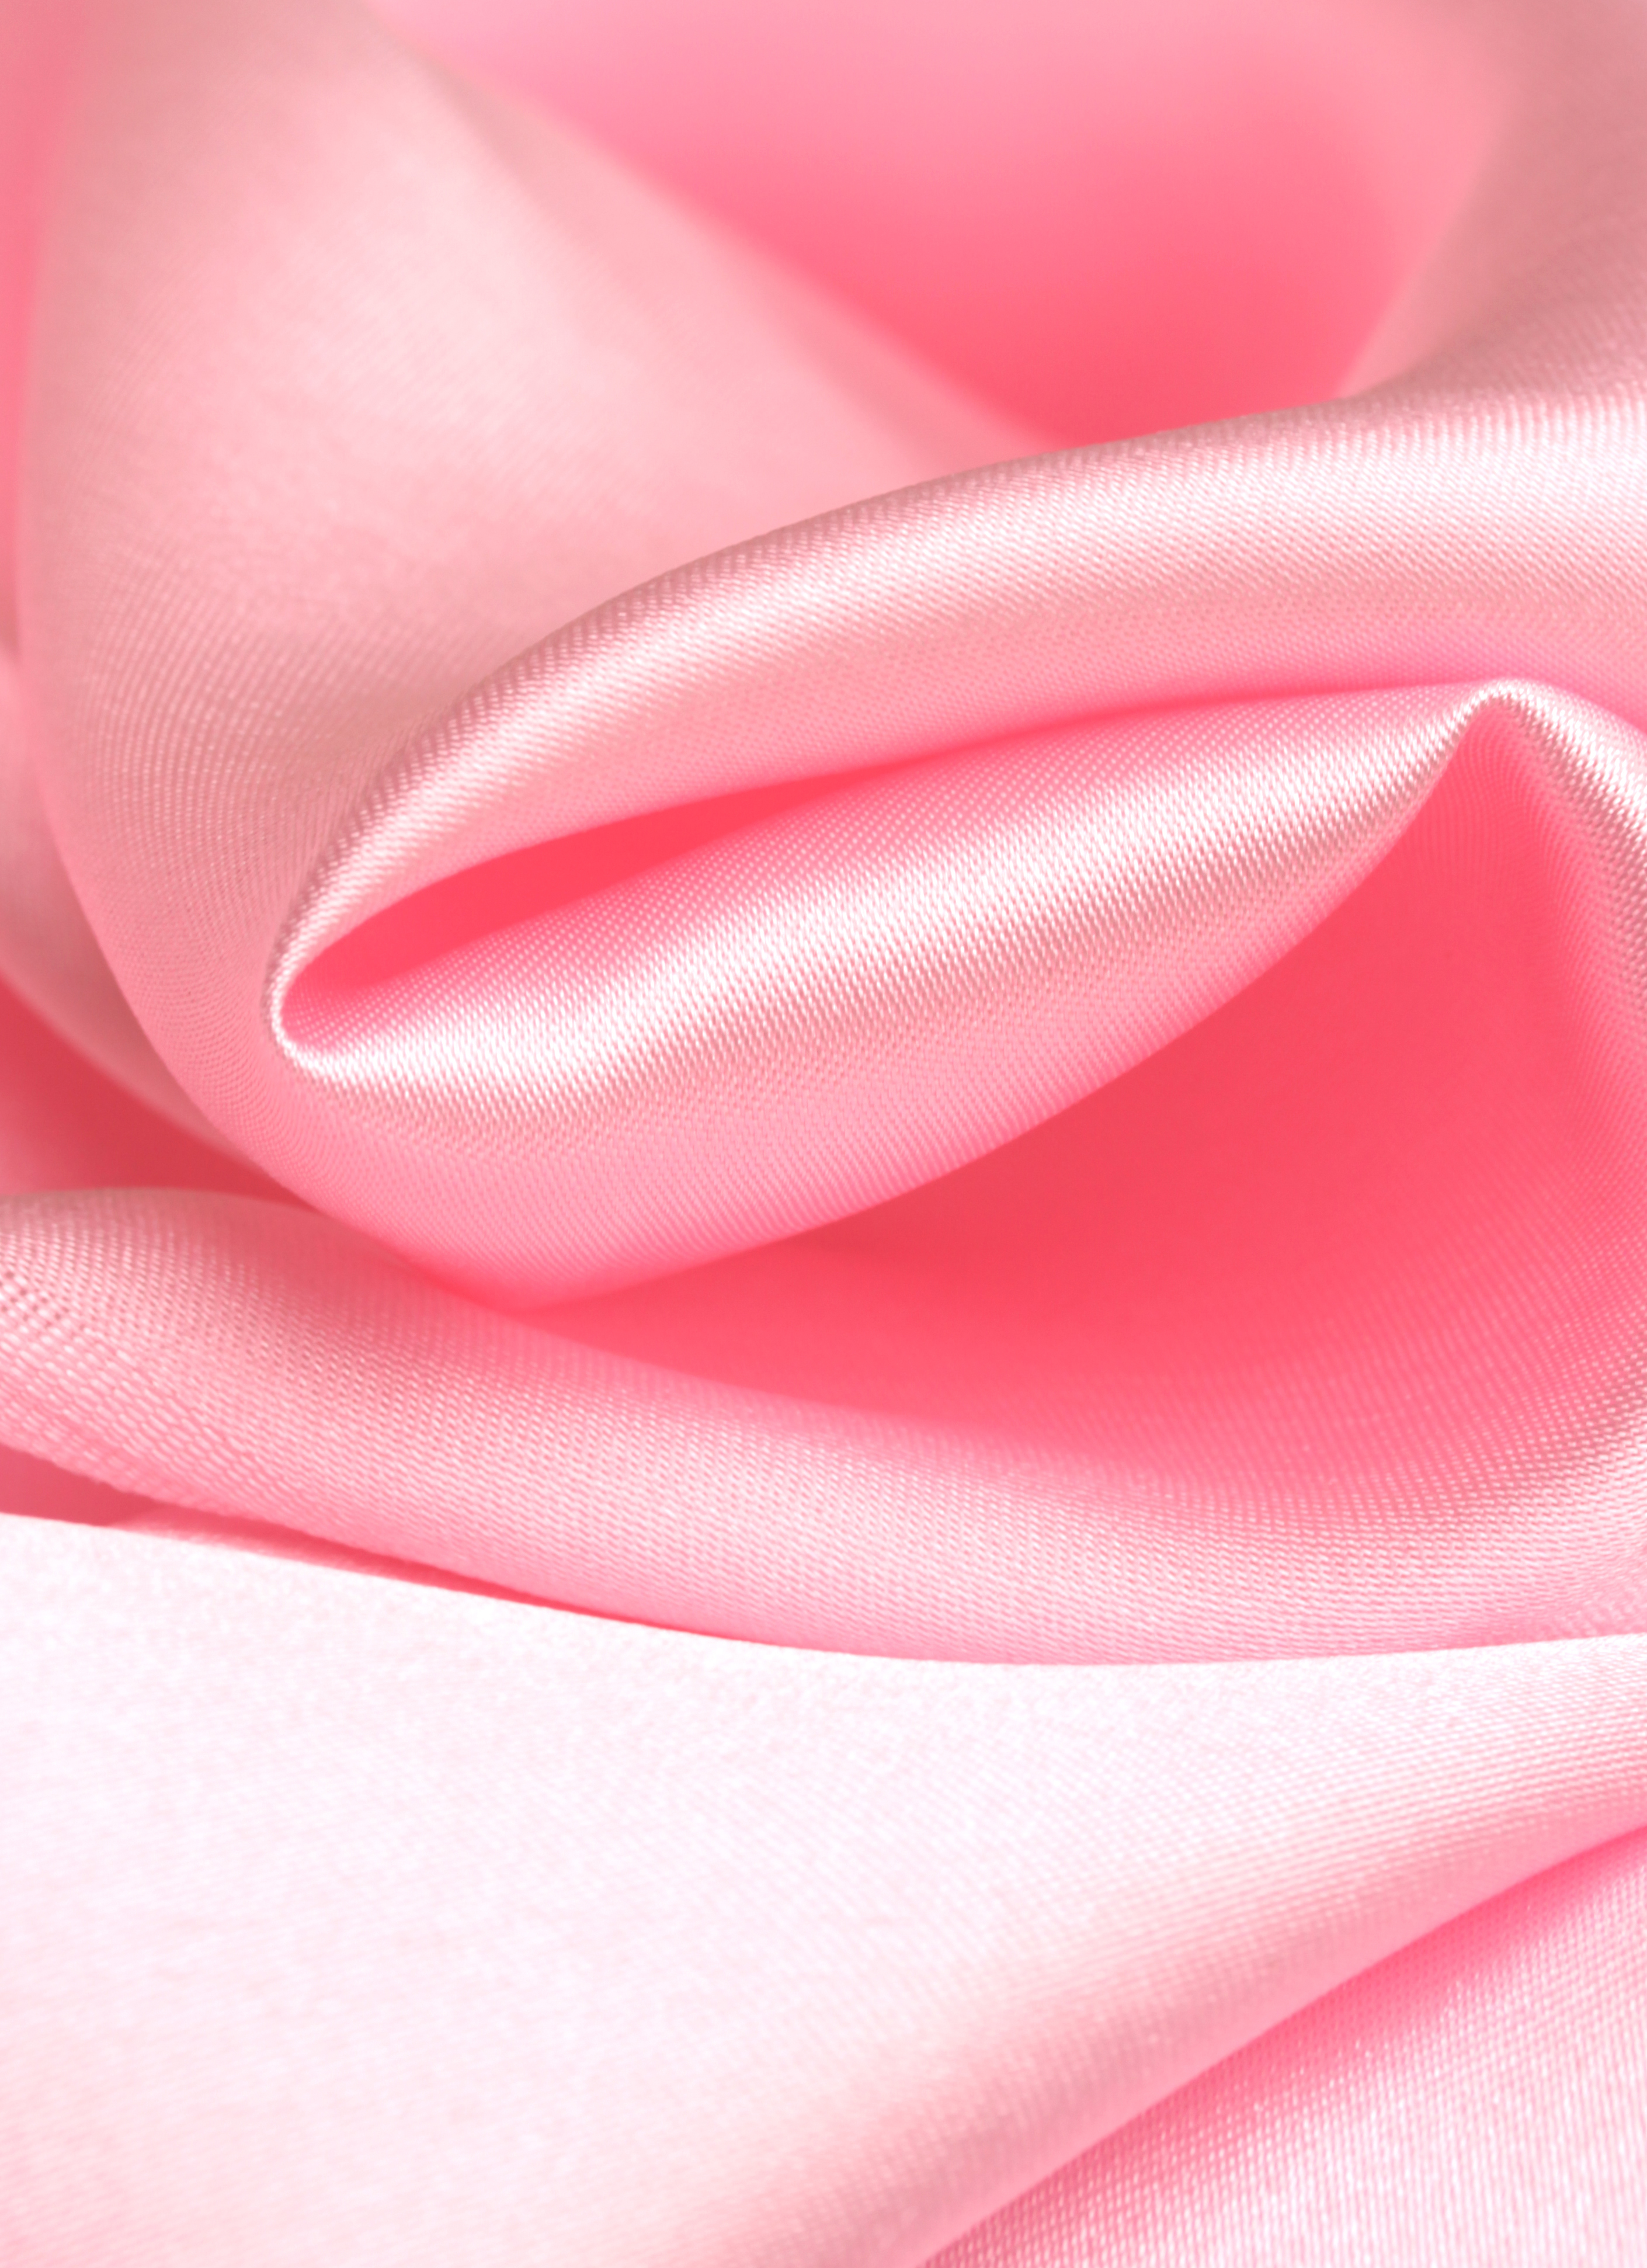 Cloth, Abstract, Sexy, Piece, Pink, HQ Photo